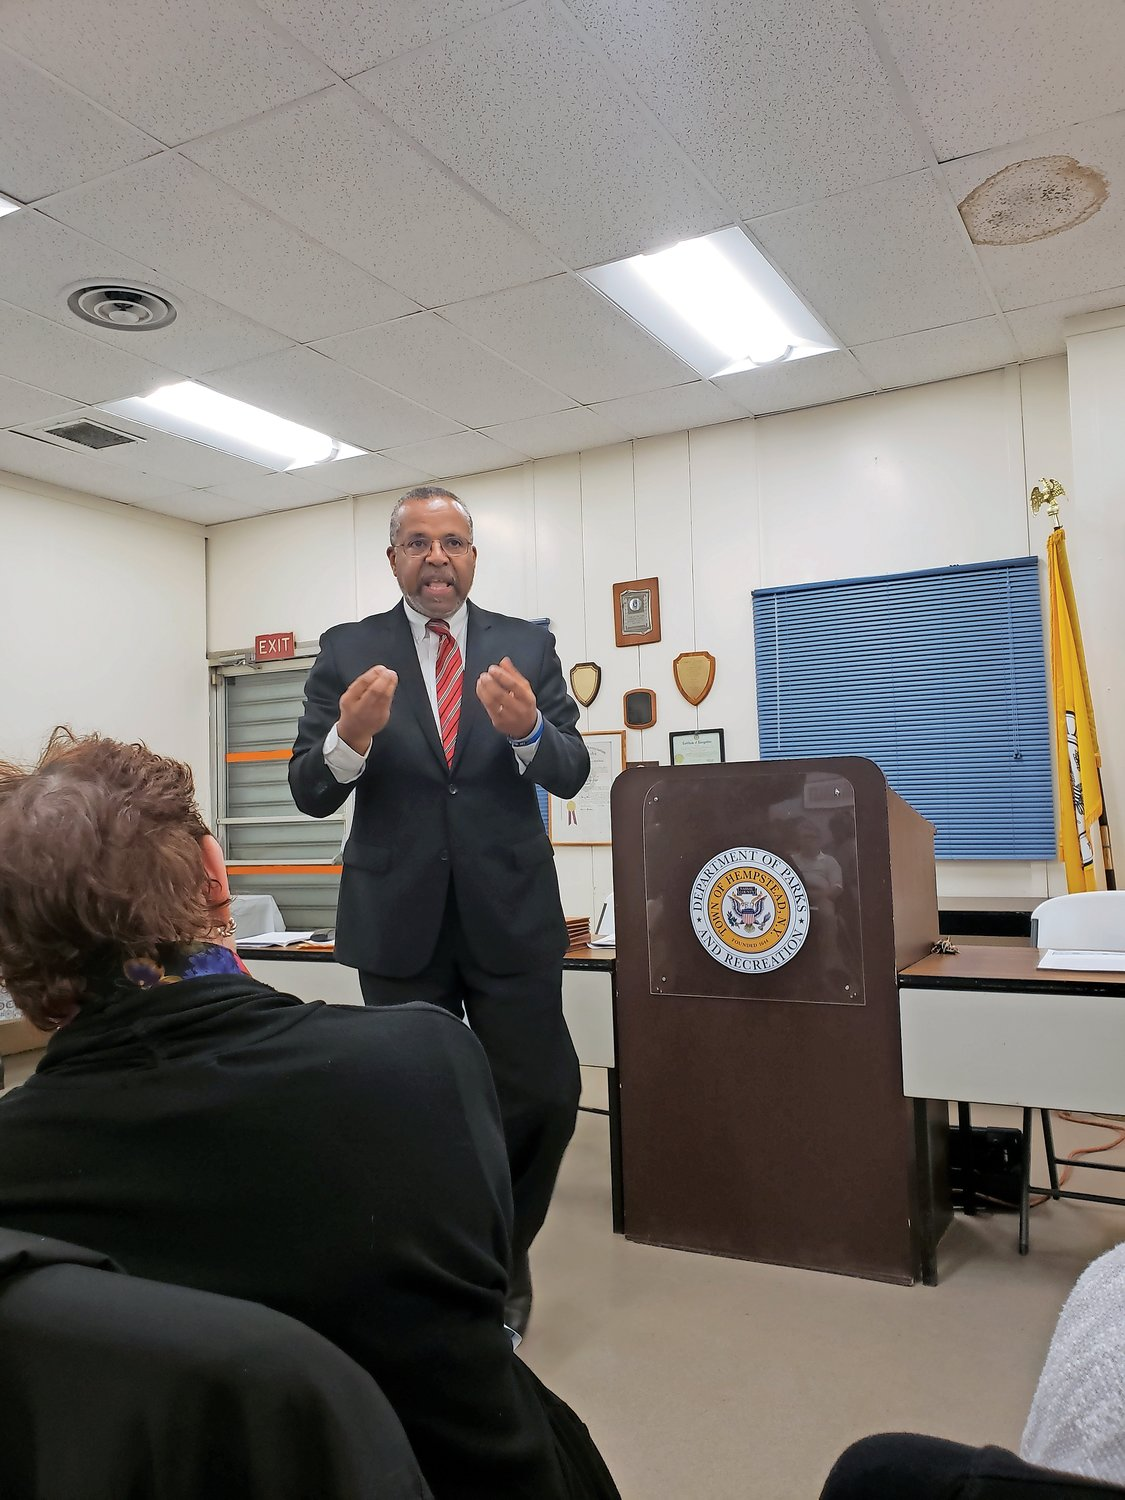 Civil rights attorney and Lakeview native Fred Brewington was the guest speaker at a joint meeting between the Lakeview and Rockville Centre Democratic clubs on May 9.